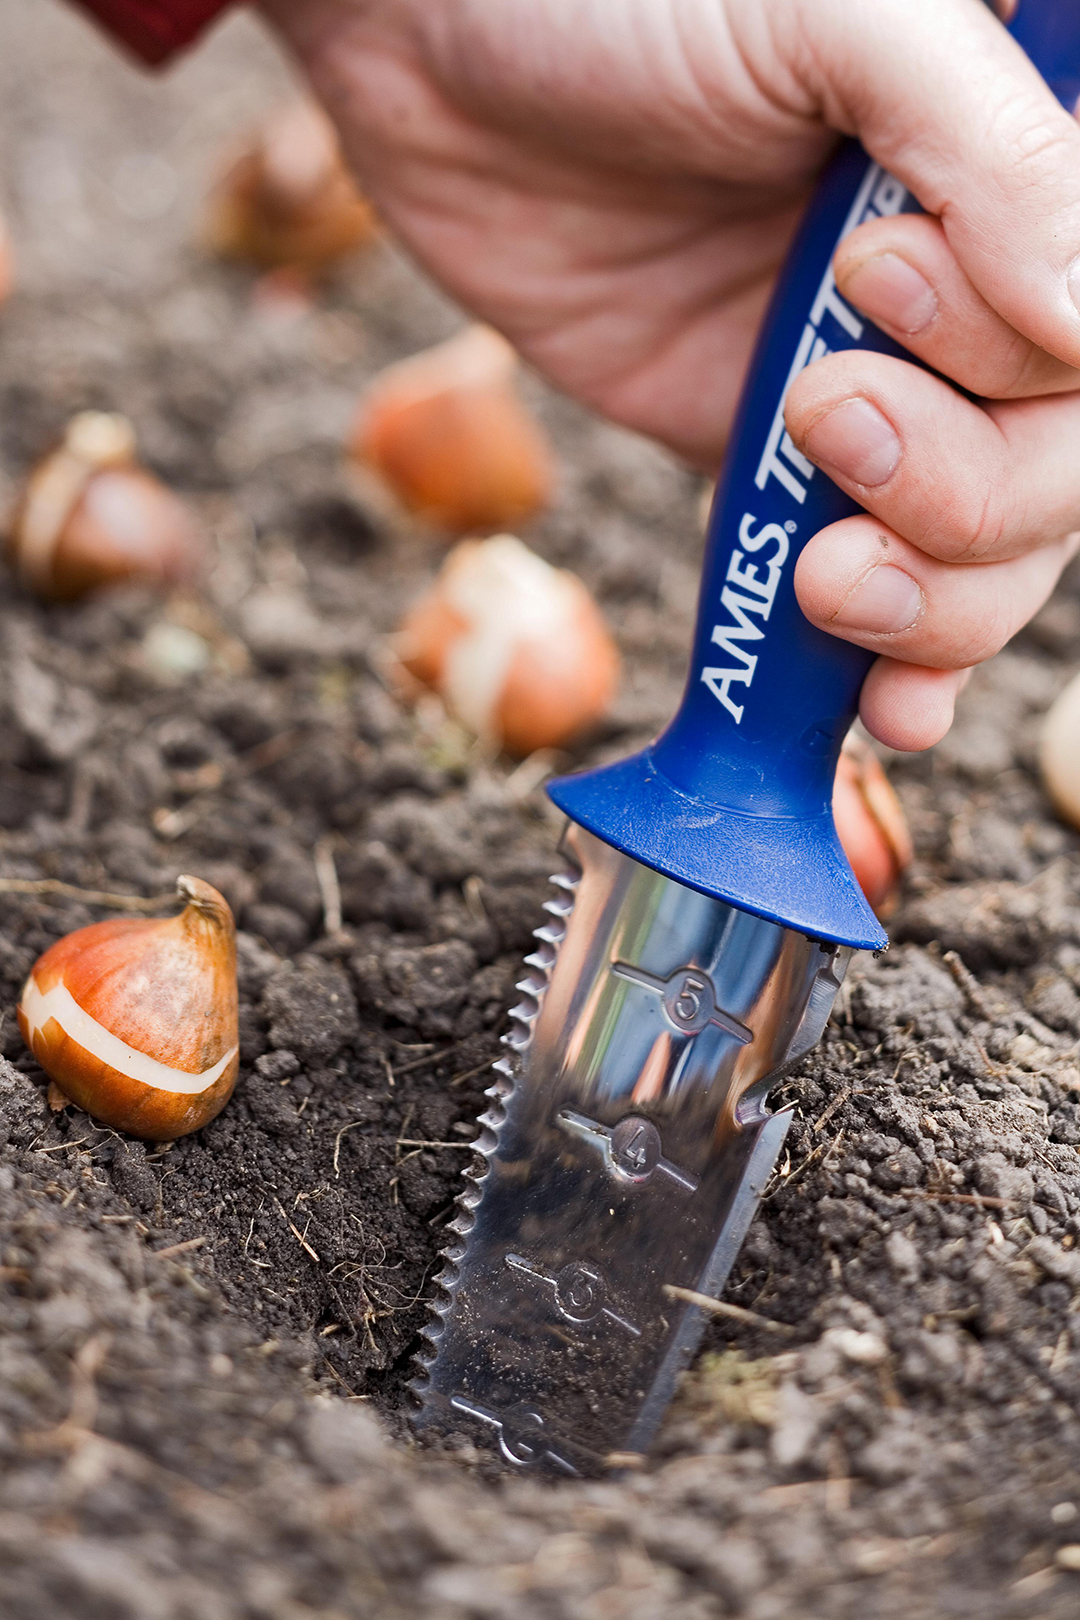 Digging hole for bulbs using measurement garden tool